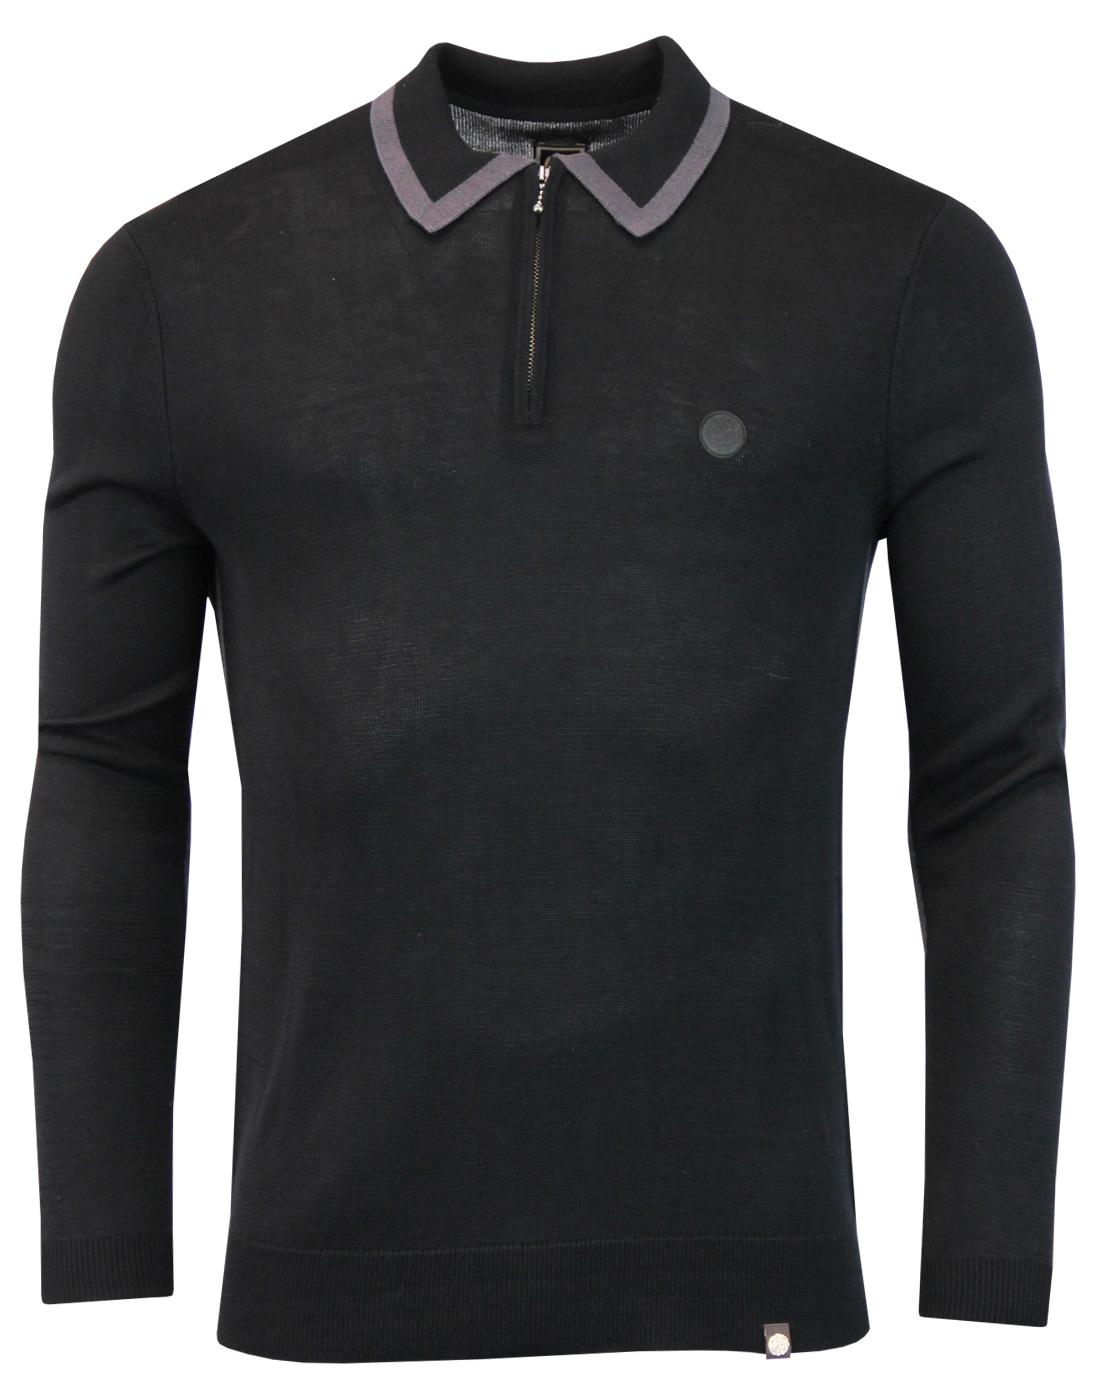 Broxwood PRETTY GREEN Zip Neck Tipped Knitted Polo